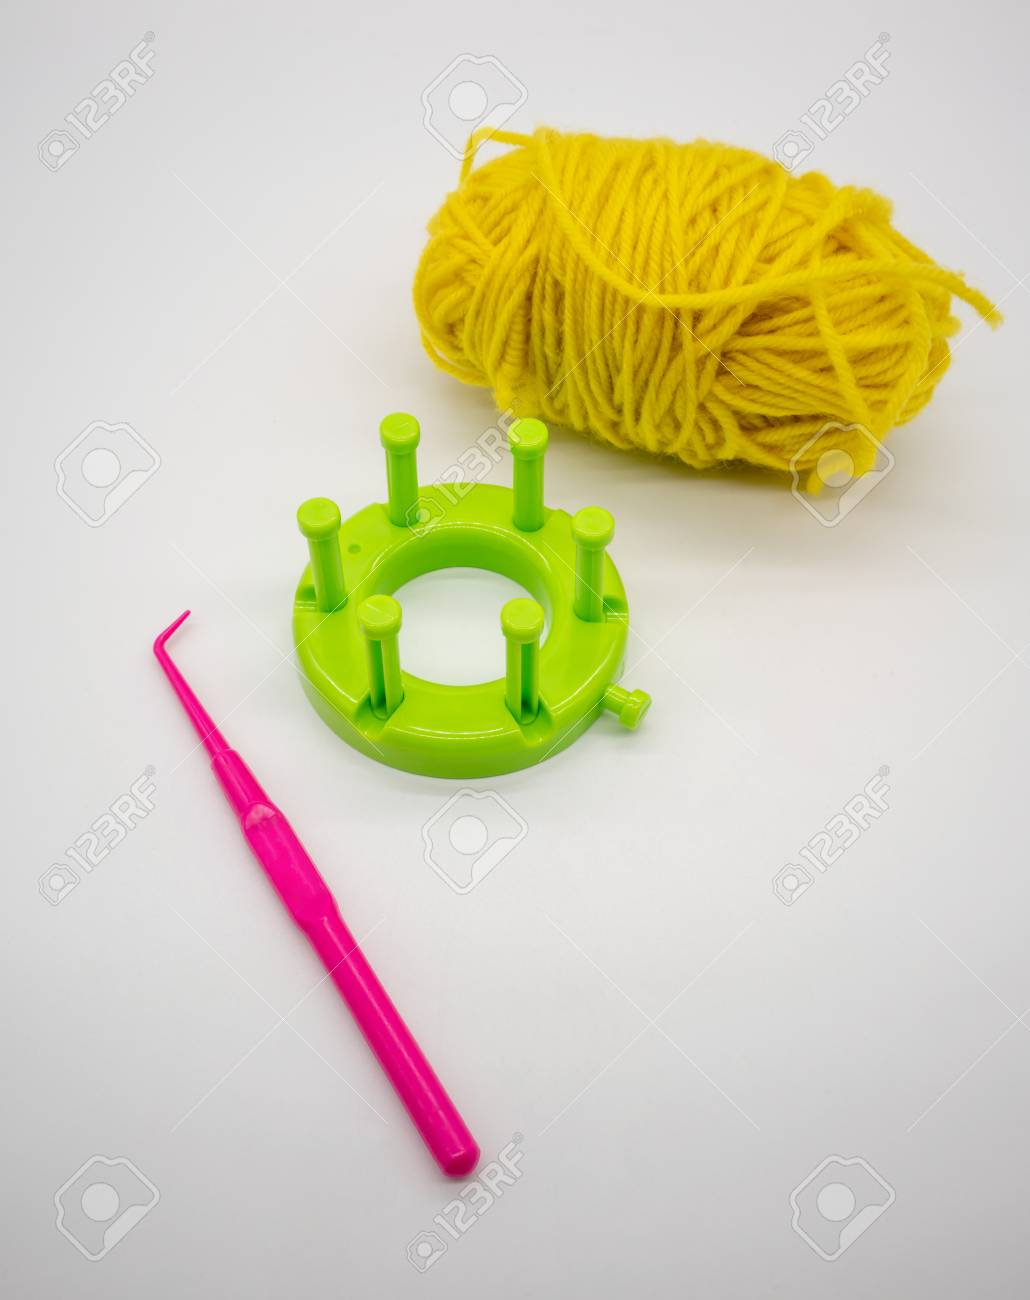 Round Knitting Loom Kit Pink Knitting Needle And Bright Green